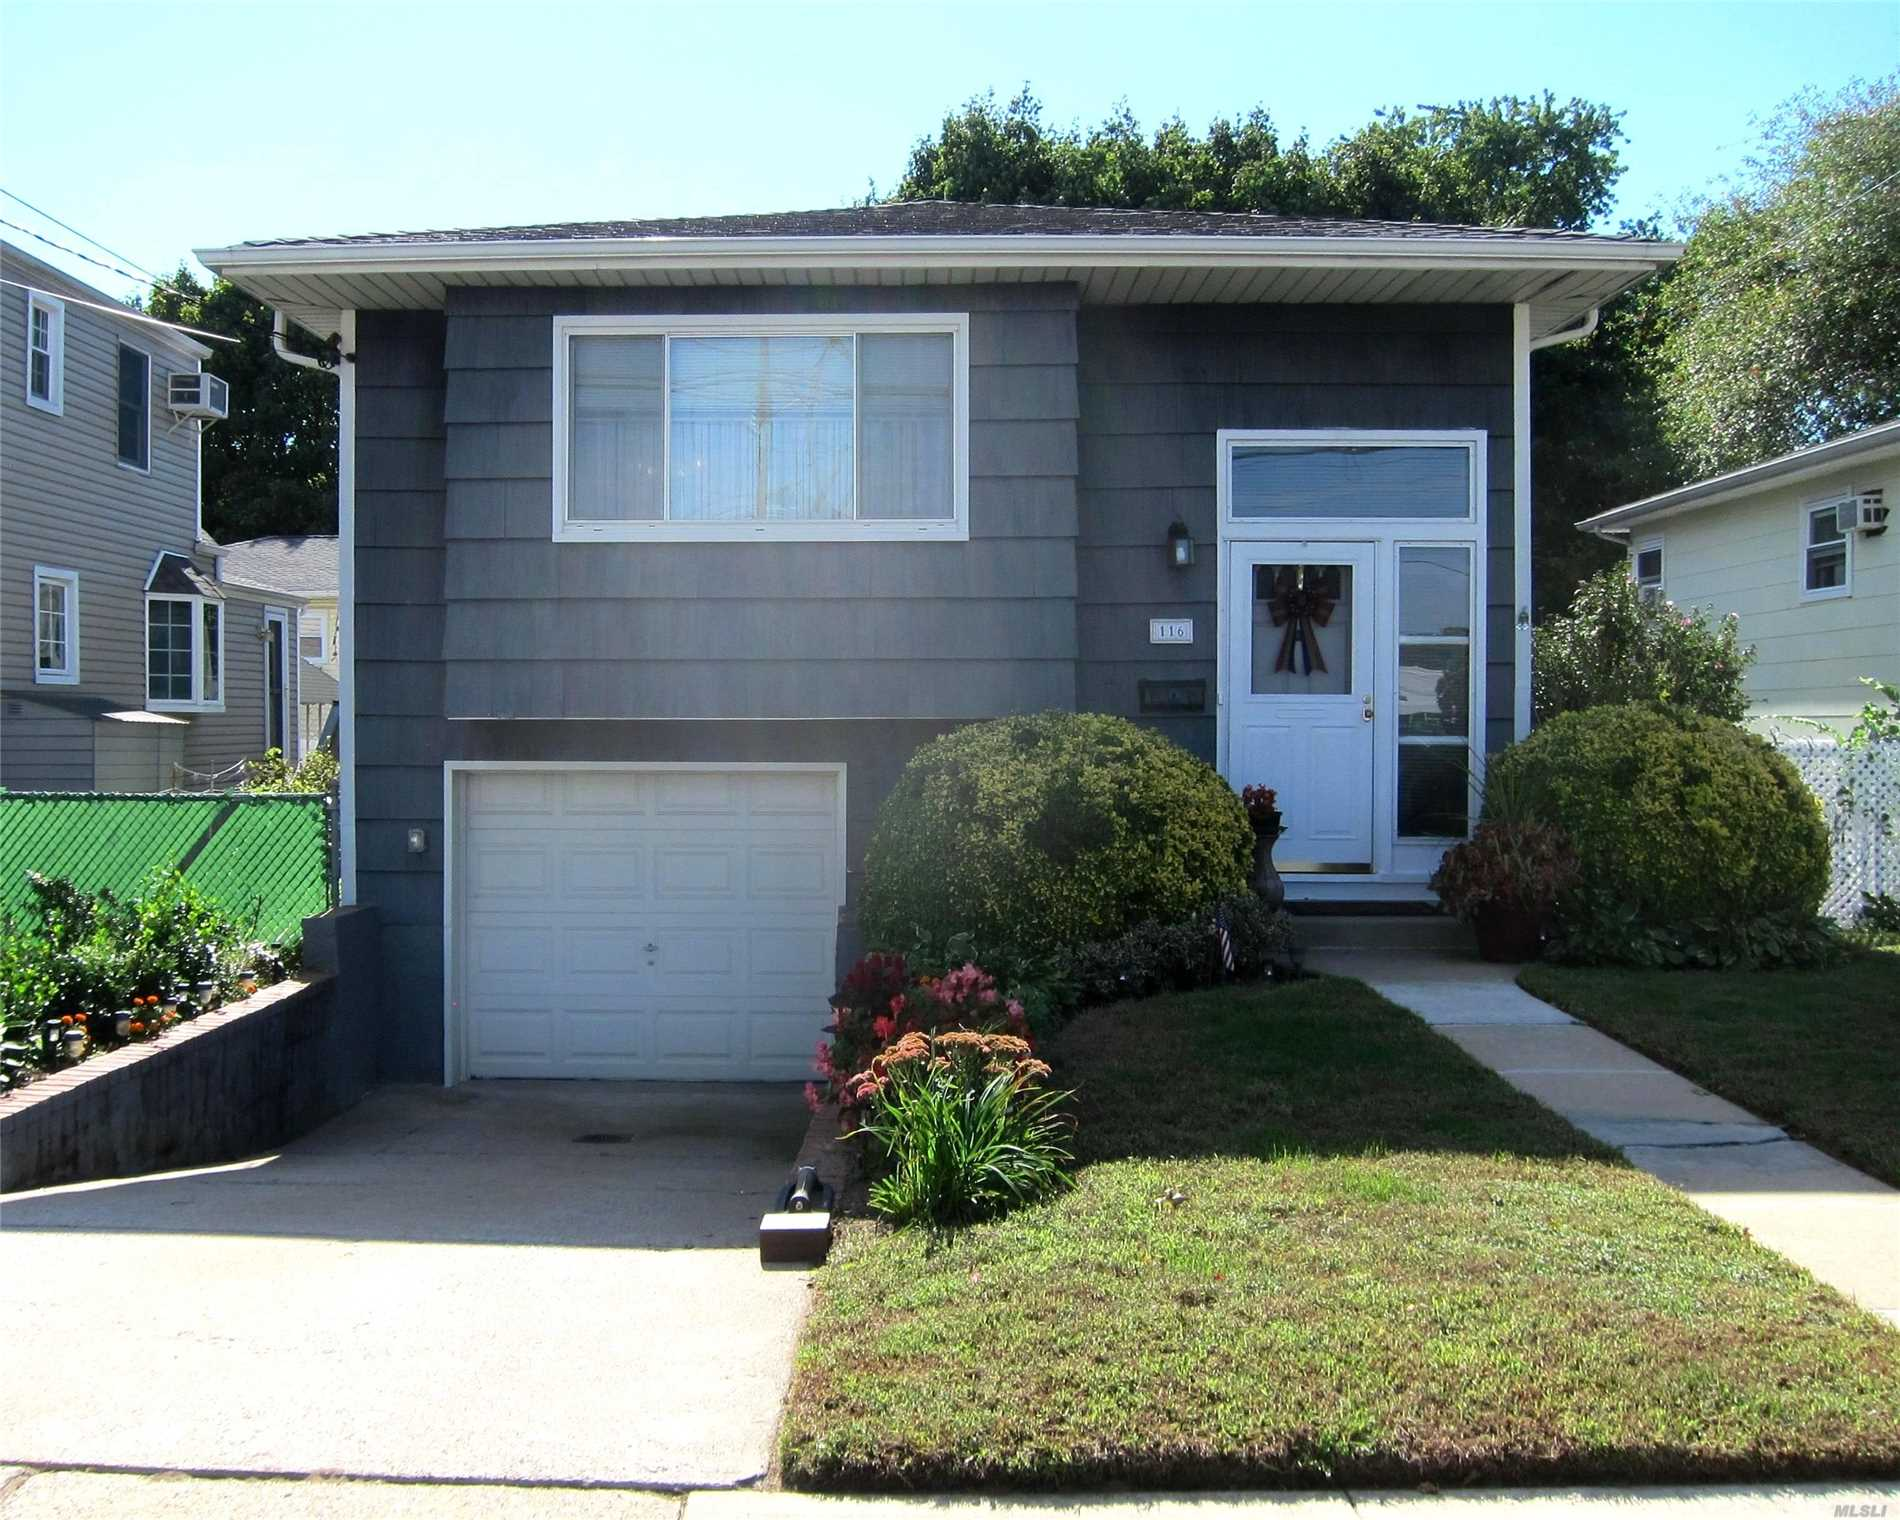 This Immaculate High Ranch Located In The Hart Of Malverne. Close To Railroad, Shopping, Restaurants. Low Taxes. Open Layout Large Bdrm .Lots Of Updates. Not Responsible For Information Within This Listing. All Information Must Be Verified By The Purchaser.